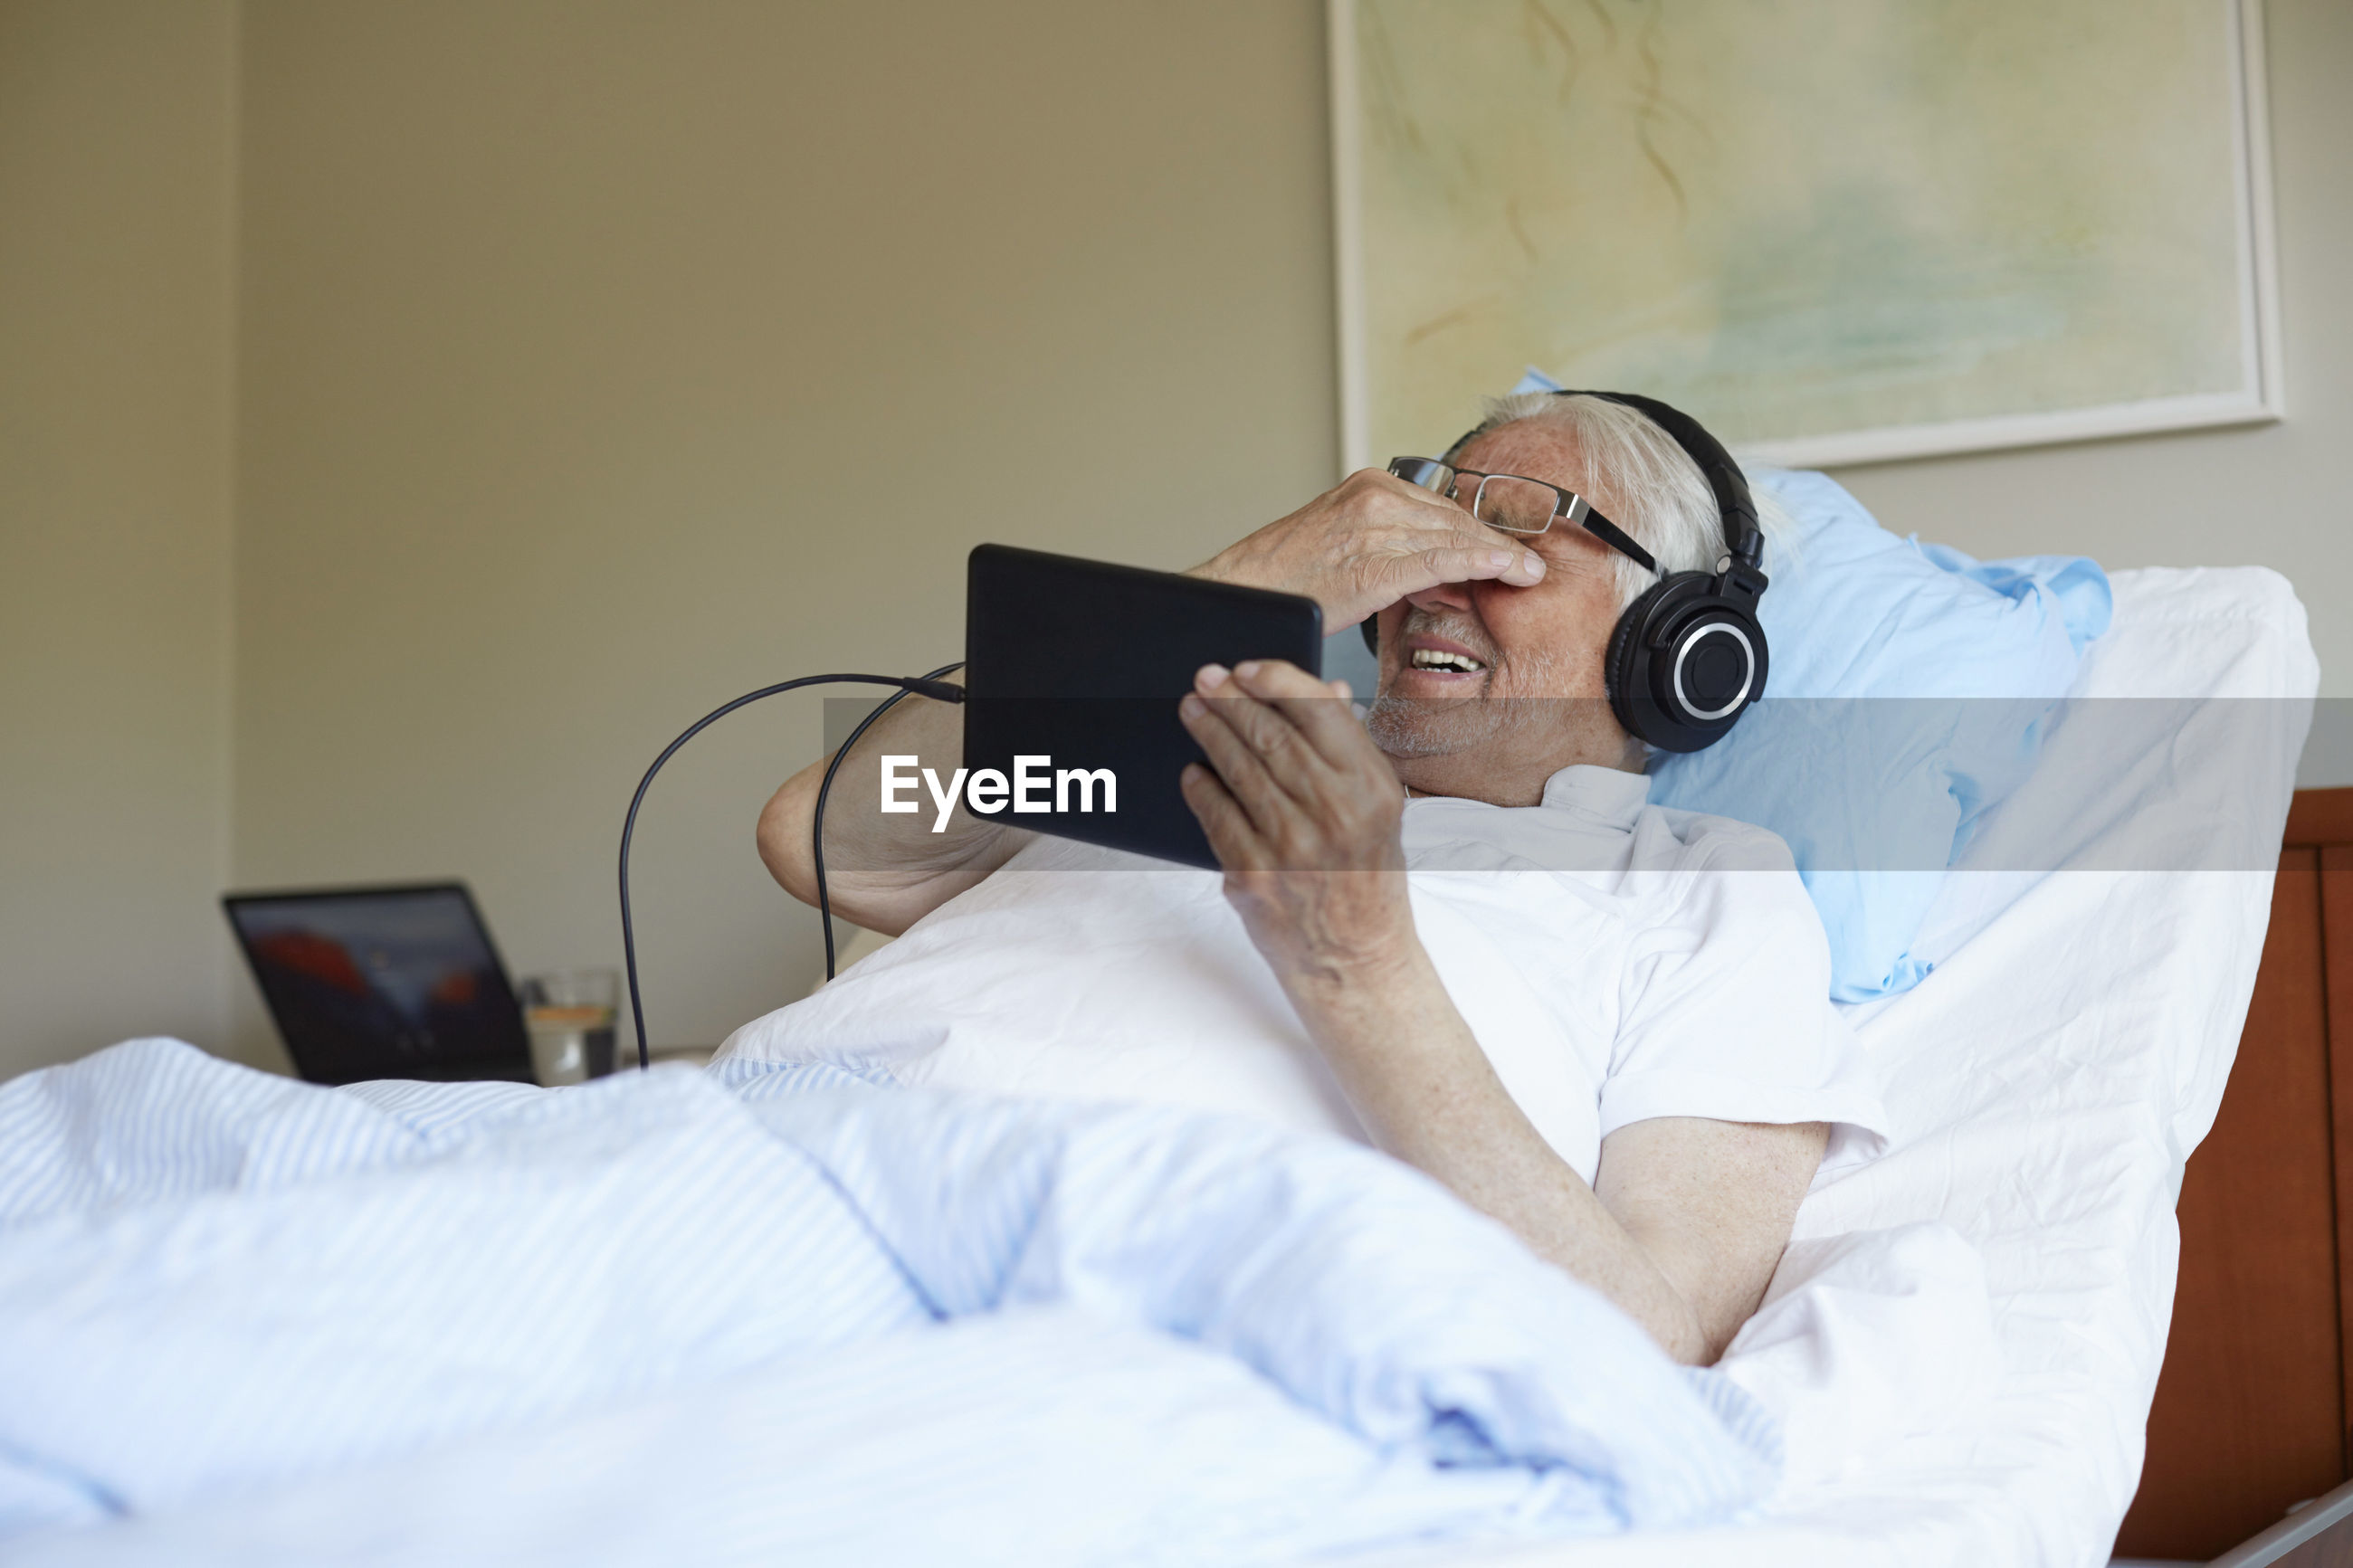 MIDSECTION OF MAN USING MOBILE PHONE WHILE SITTING ON BED IN ROOM